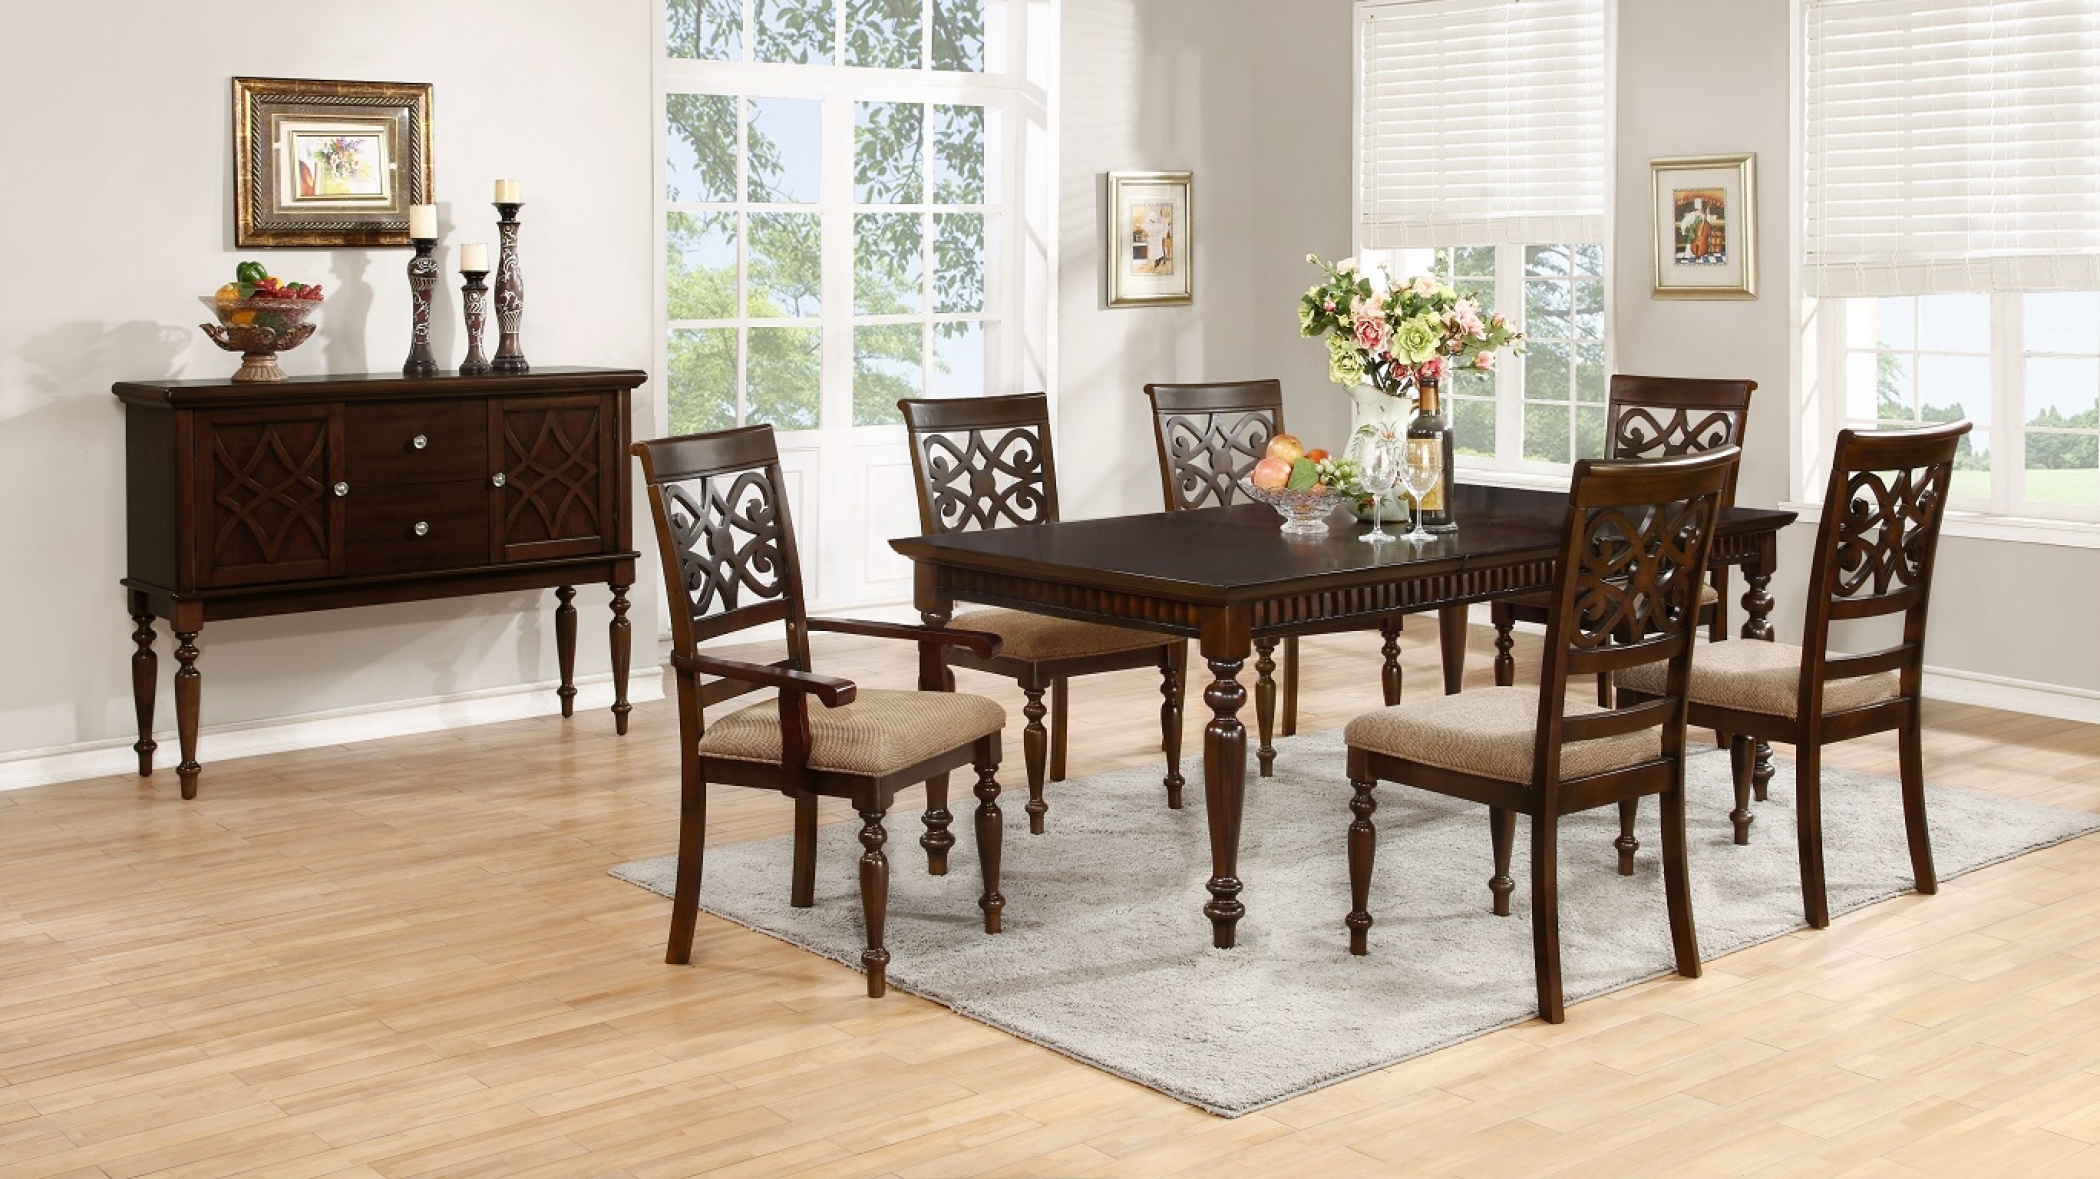 Dining Room Sets Under 500 00 Of Dining Rooms Standard Height Furniture Plus Delaware